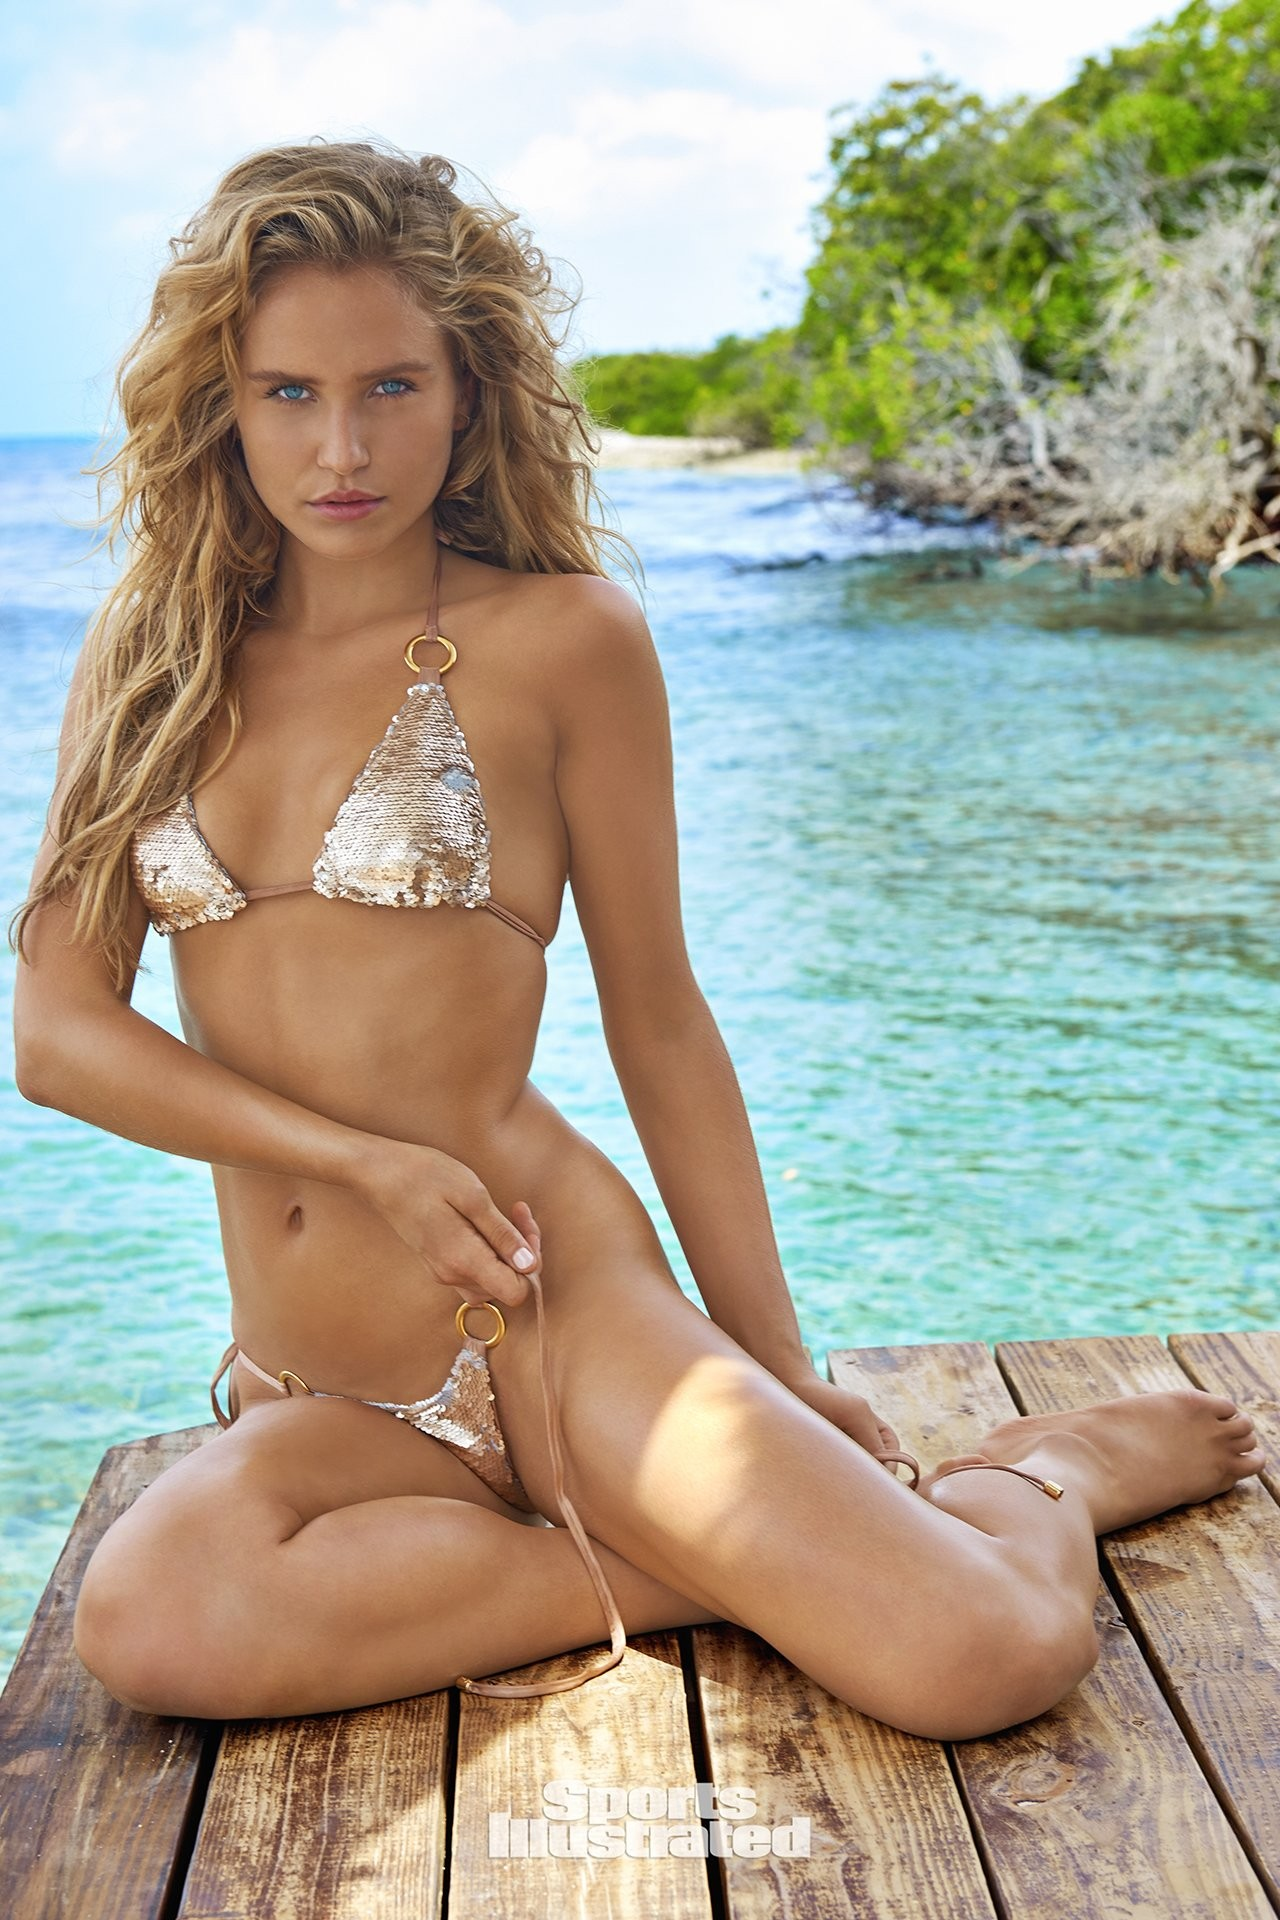 Sailor Brinkley Cook Nude Photos and Videos